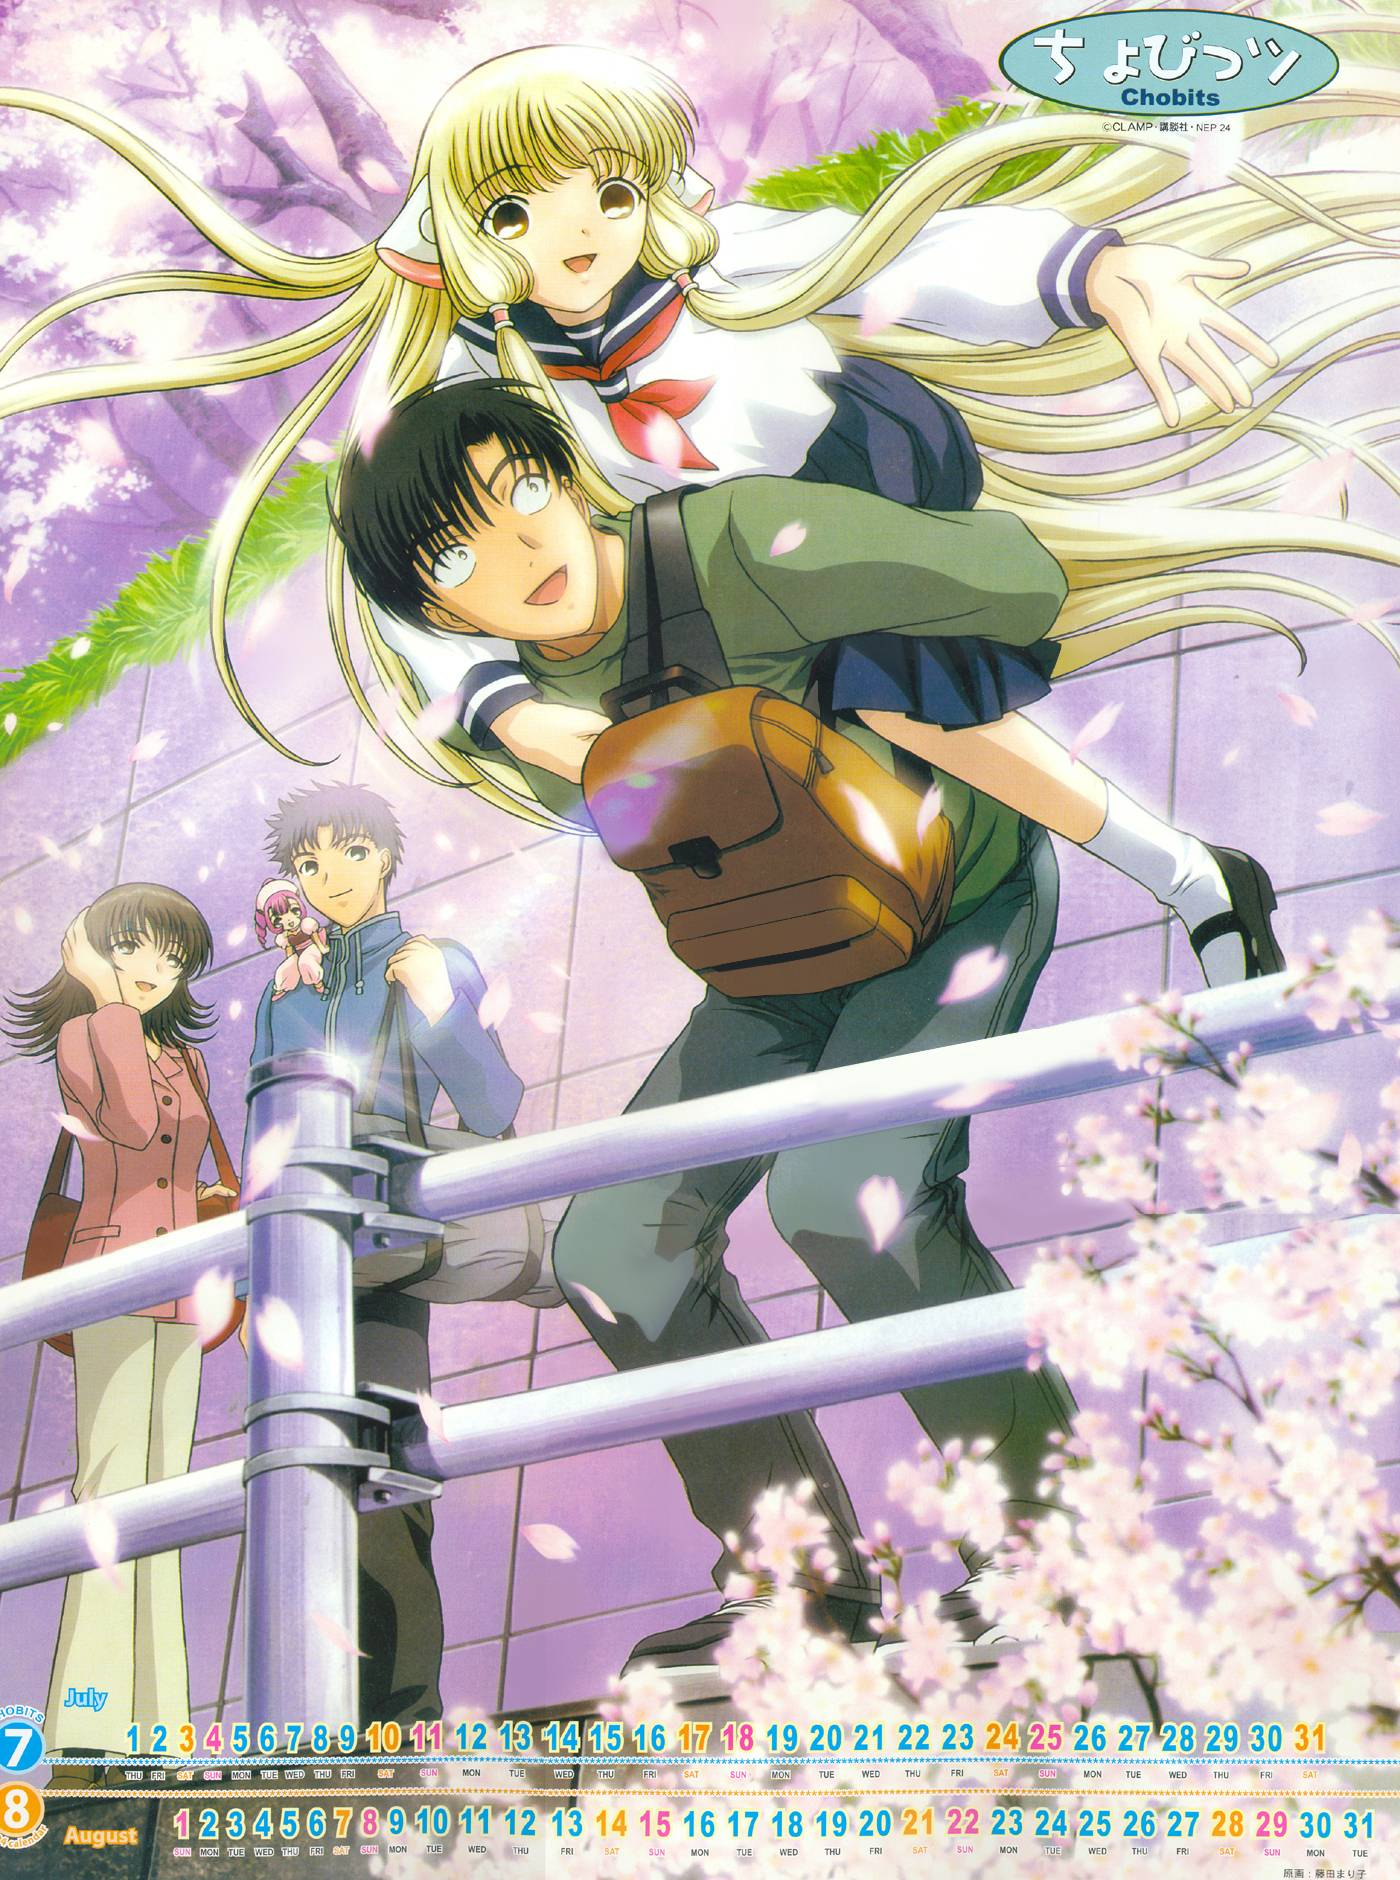 Chobits - CLAMP - Image #26053 - Zerochan Anime Image Board